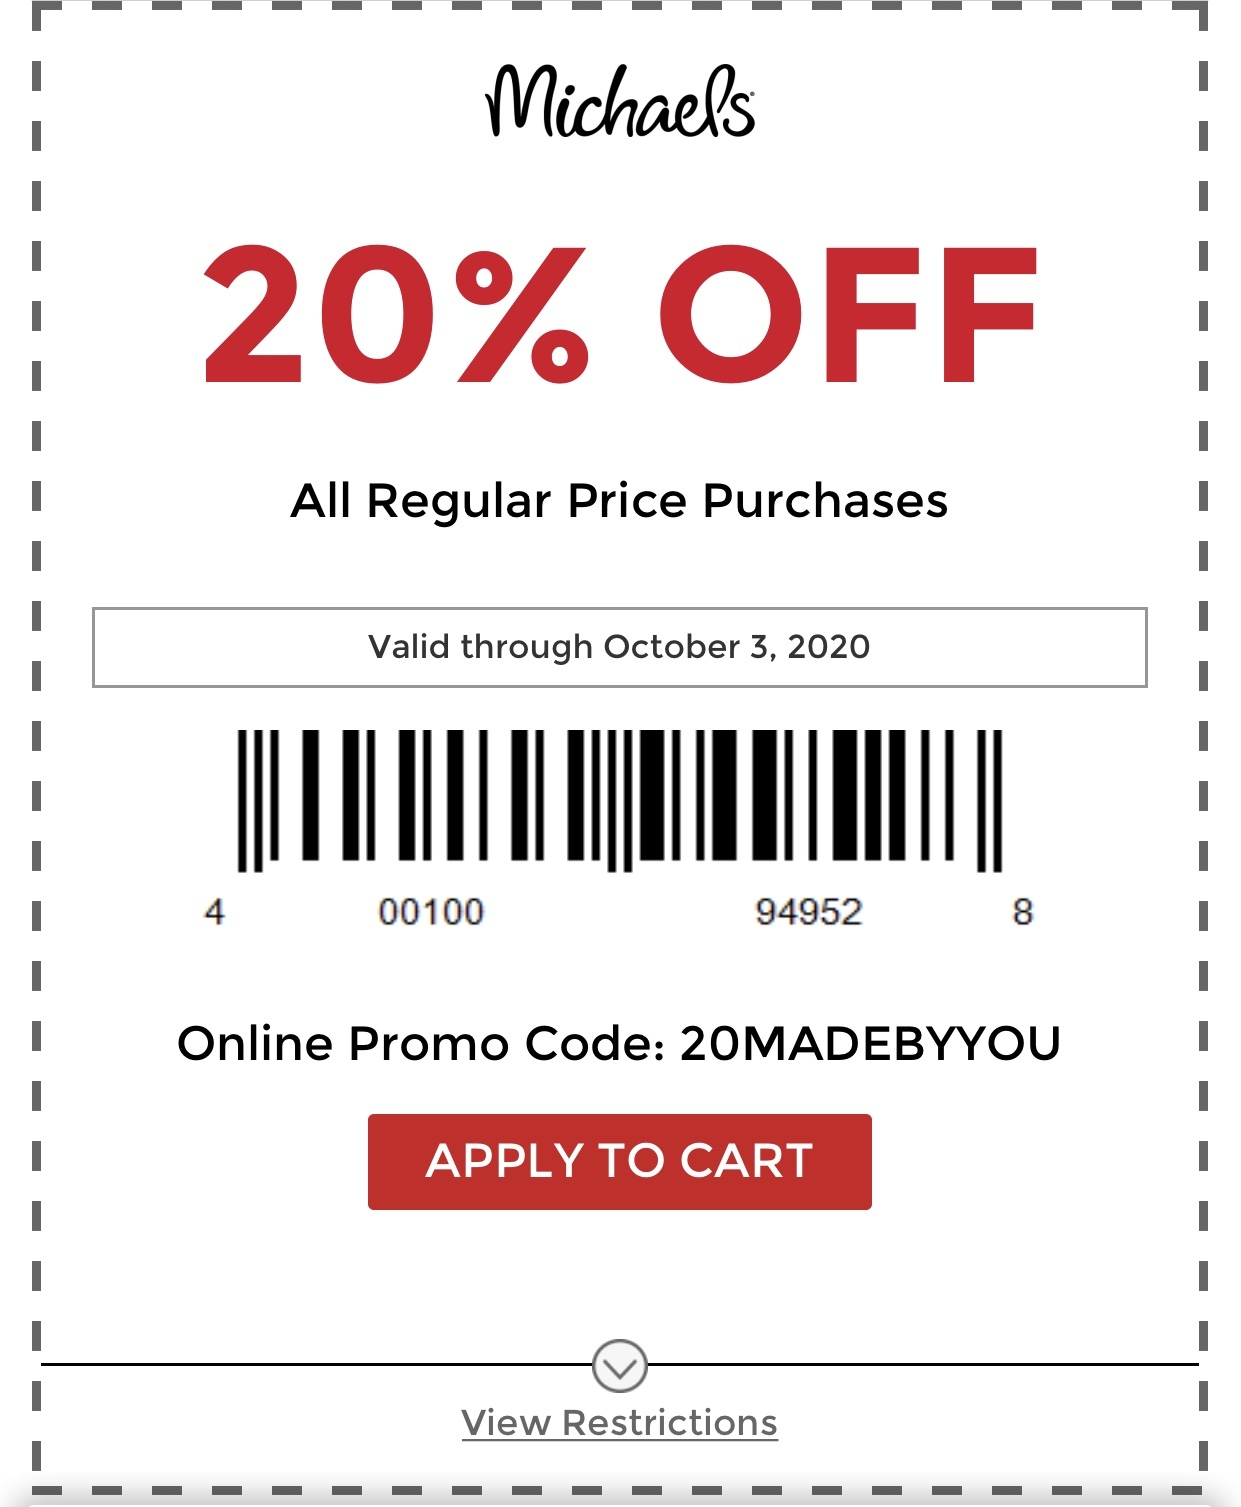 Michaels Coupon: 20% Off Entire Regular Priced Purchase